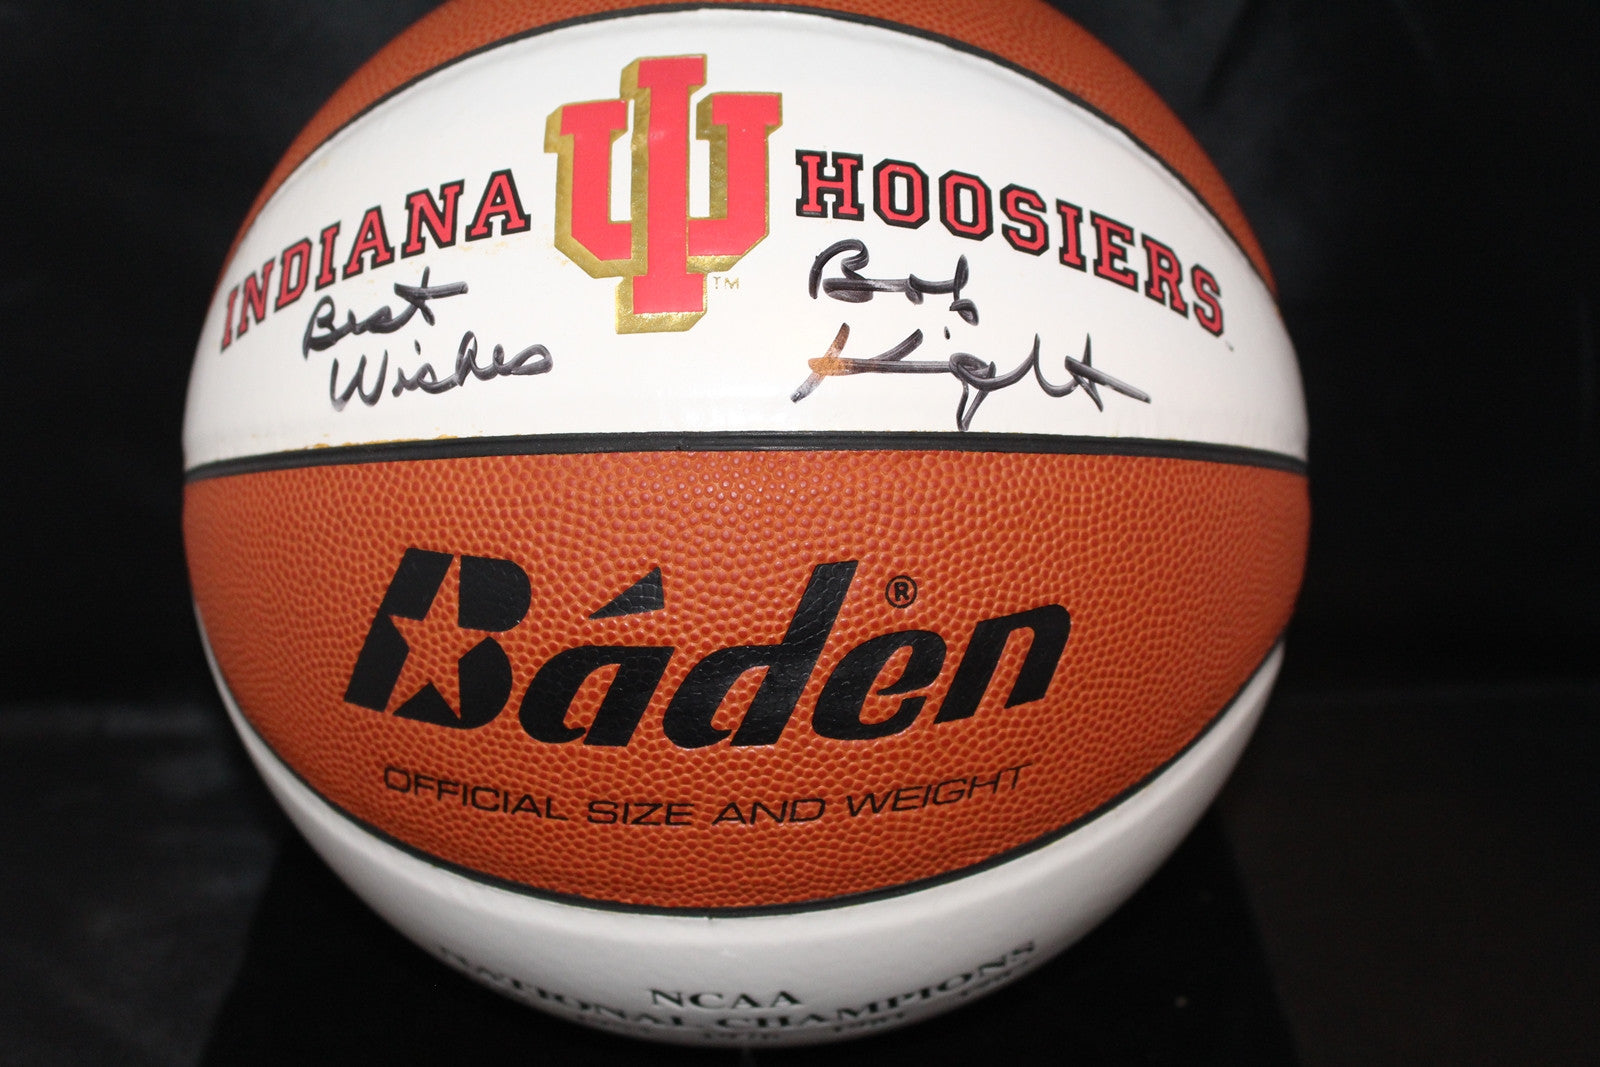 Bob Knight Autographed Indiana University NCAA Champions Logo Basketball - Vintage Indy Sports